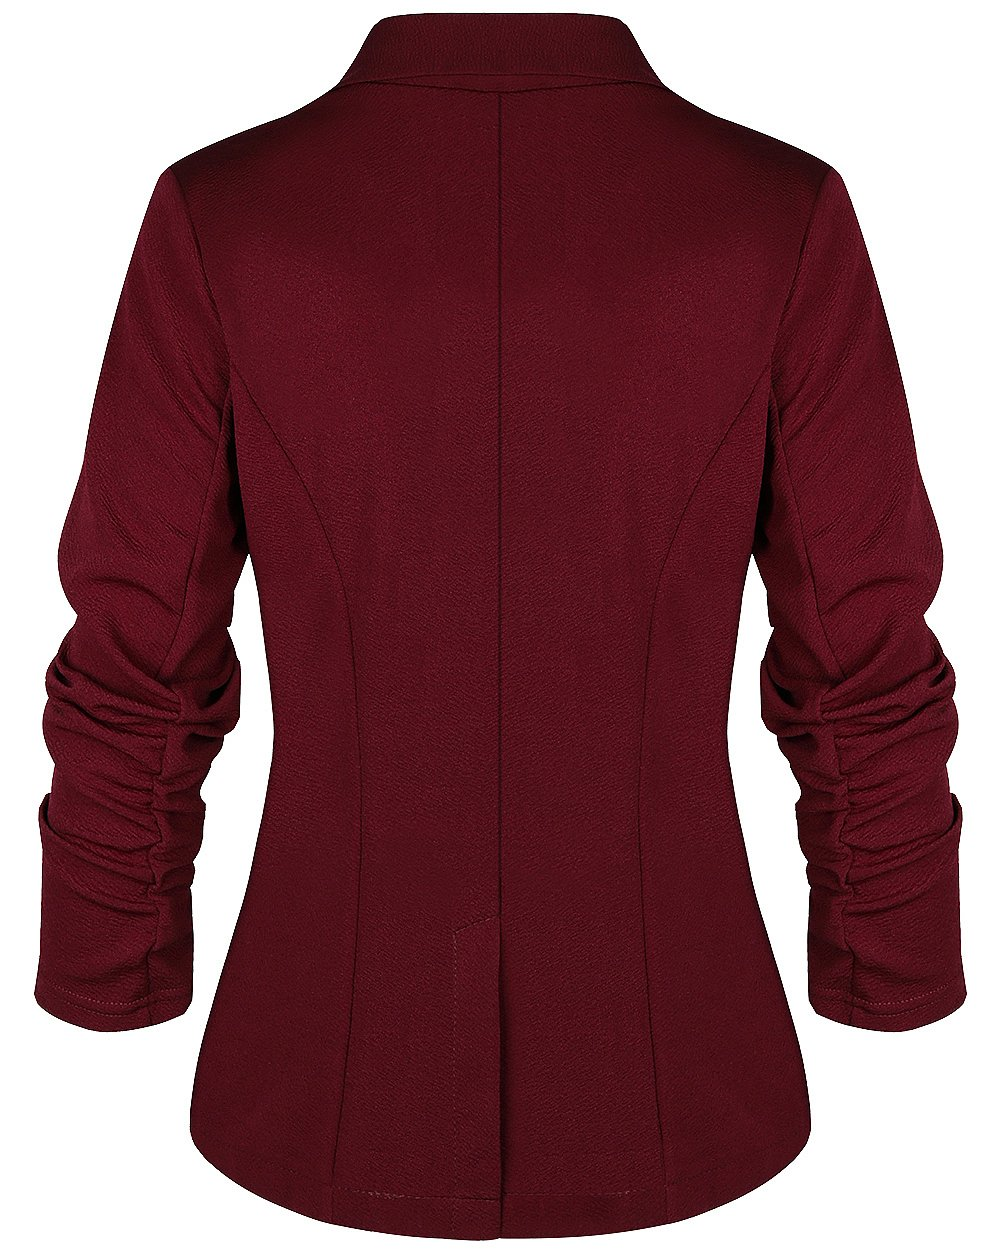 sanatty Women's 3/4 Ruched Sleeve Open Front Lightweight Work Office Blazer Jacket,Winered,Small by sanatty (Image #3)